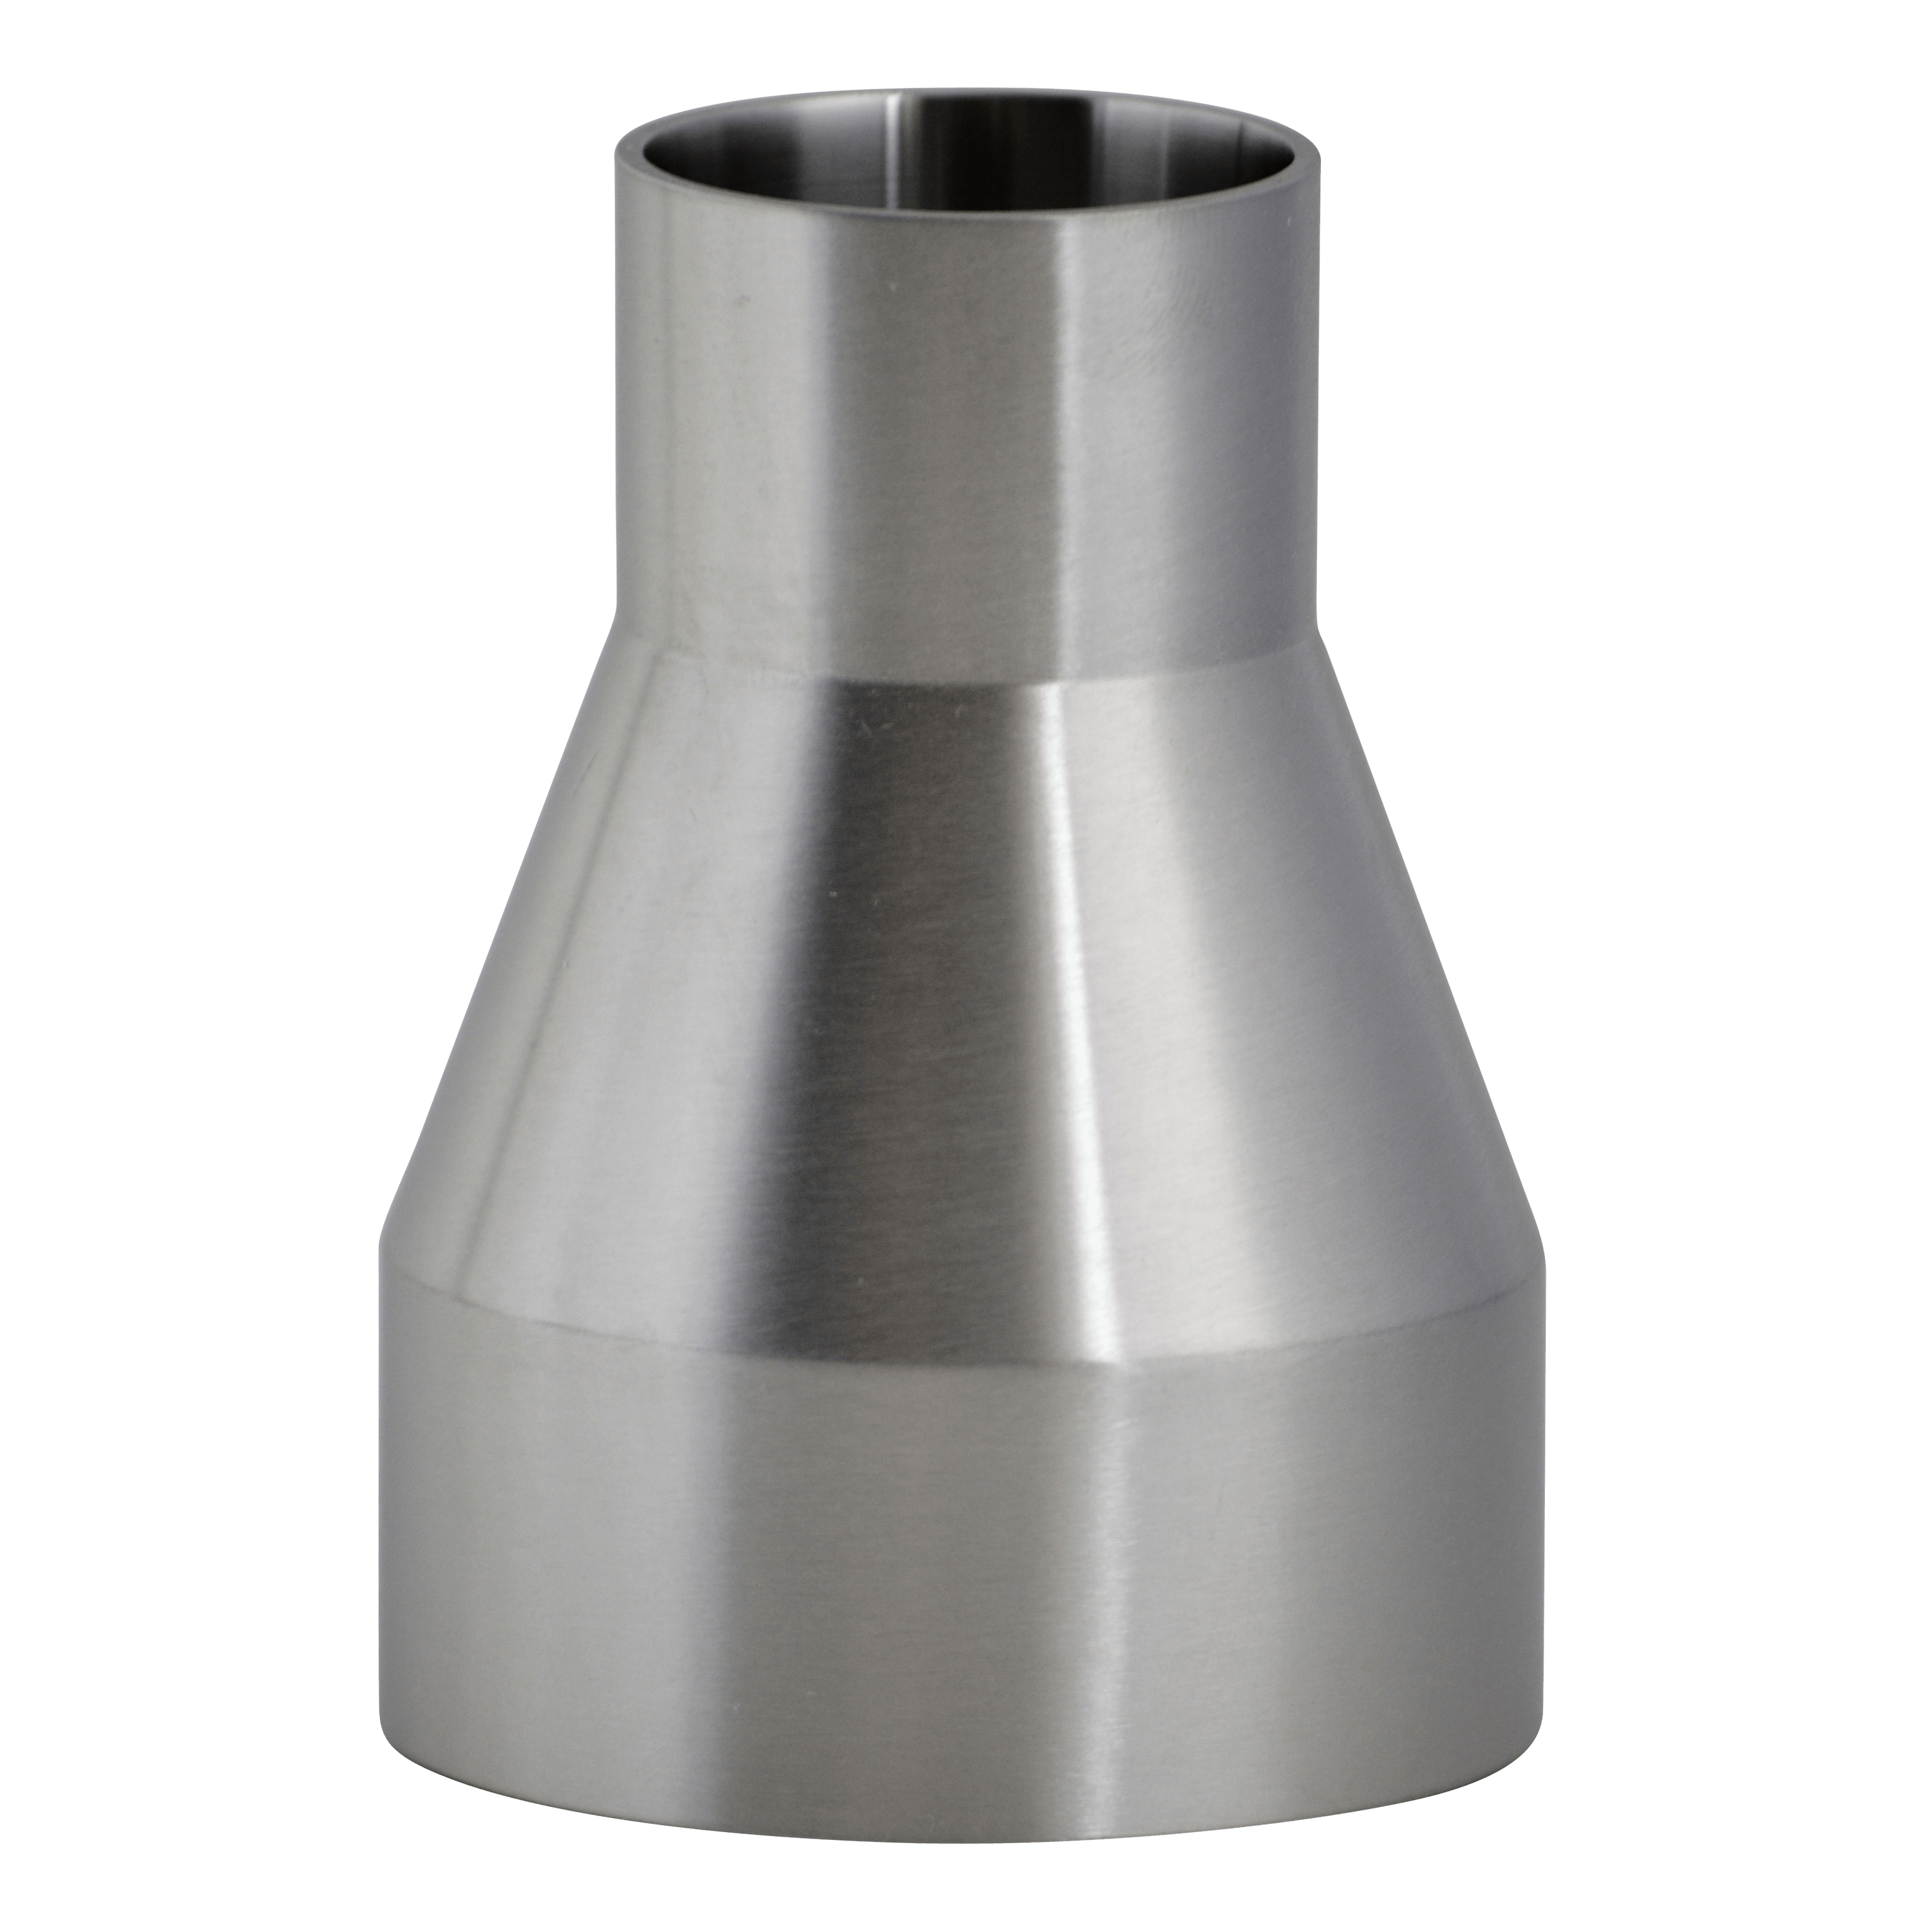 Tl ″ reducer concentric weld ends bpe l